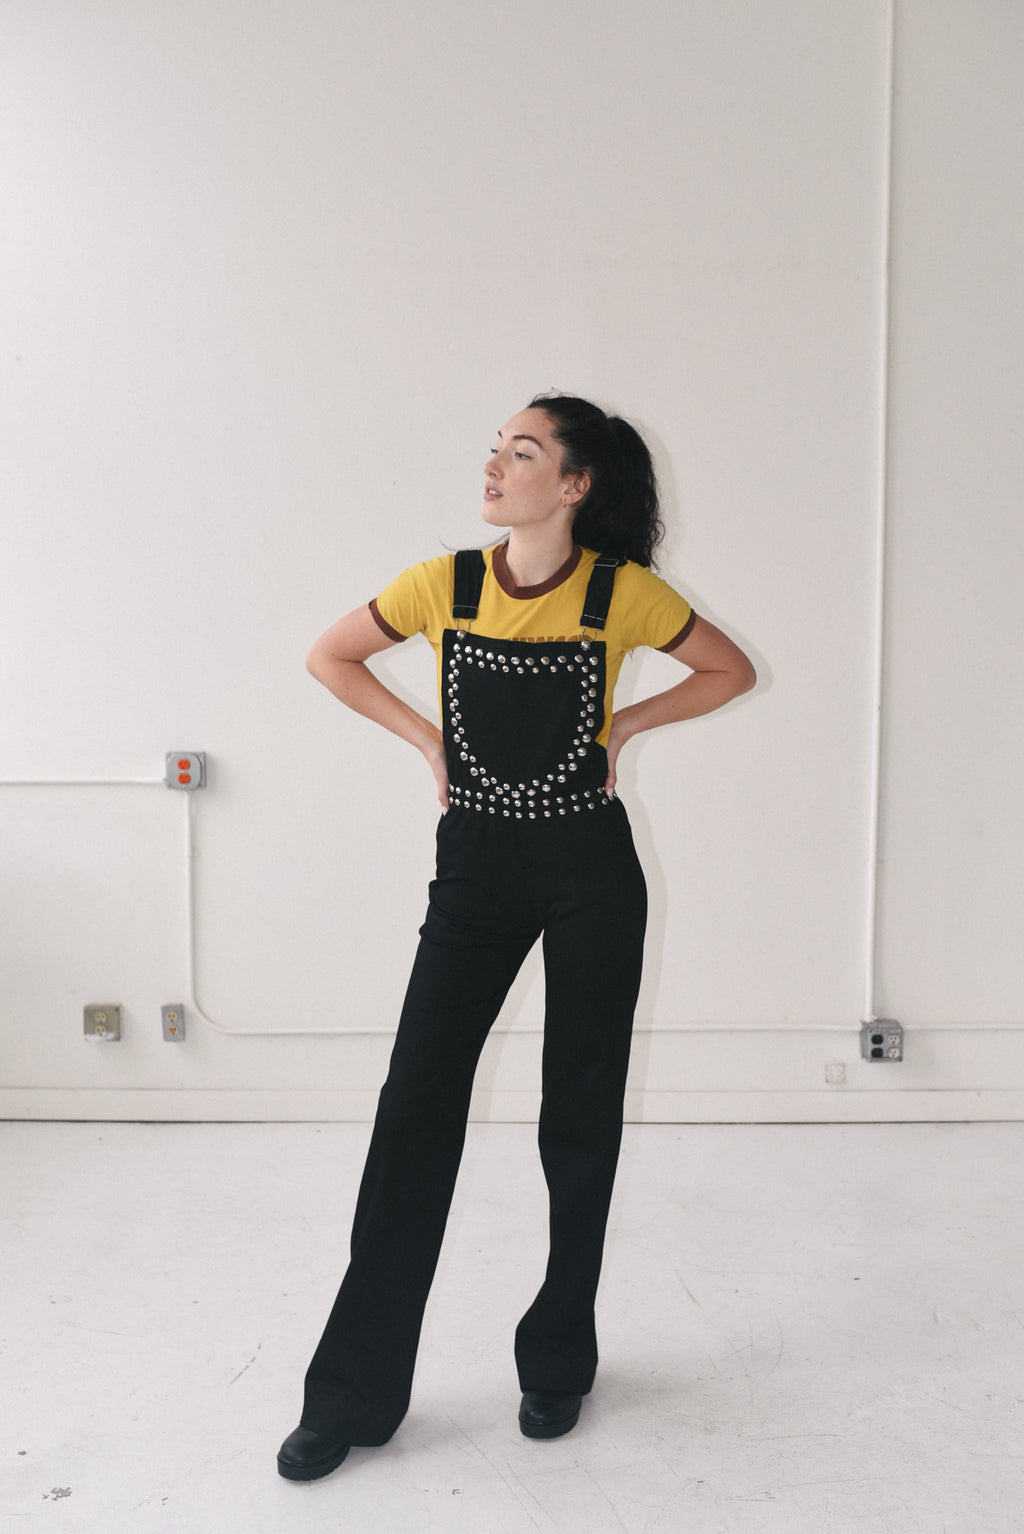 SHOP THE CREATURES ELECTRIC FUZZ OVERALLS